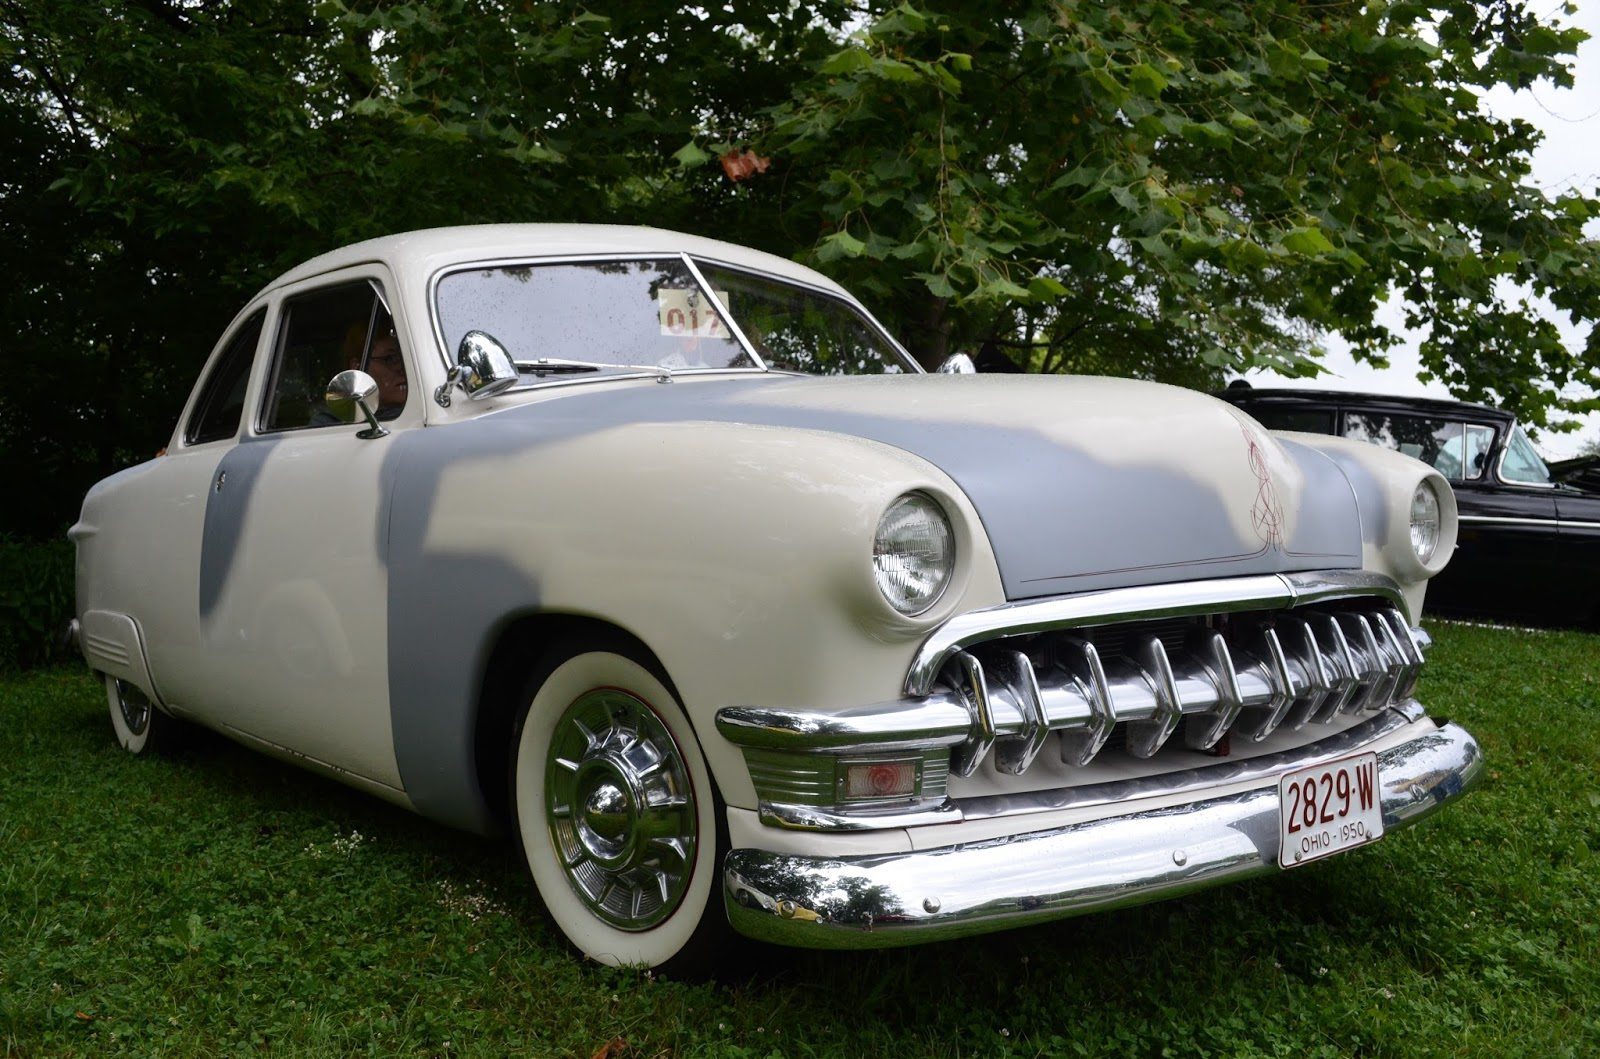 Turnerbudds Car Blog Fabulous Fifties At Rollin On The River 1950s American Cars Oldsmobile Some Were Stock And Others Had Been Customized But All Marvels From Age When America Became A Addicted To Their